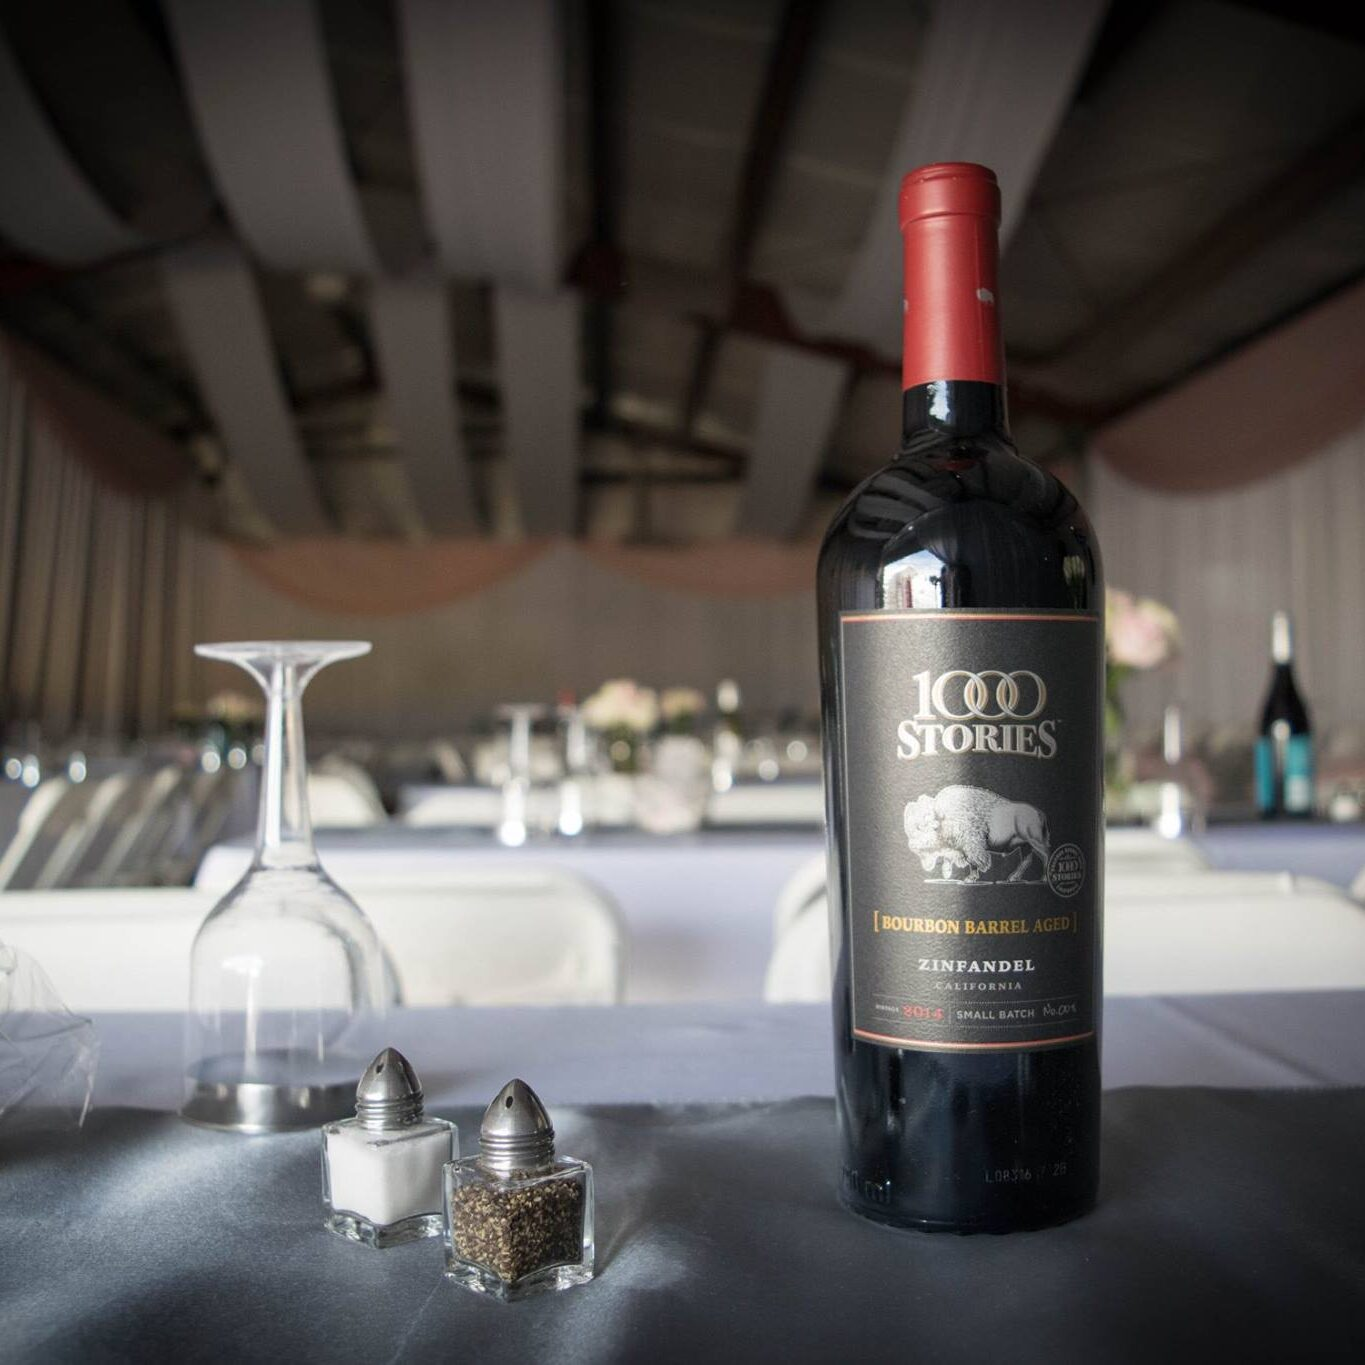 Wedding Reception with red wine